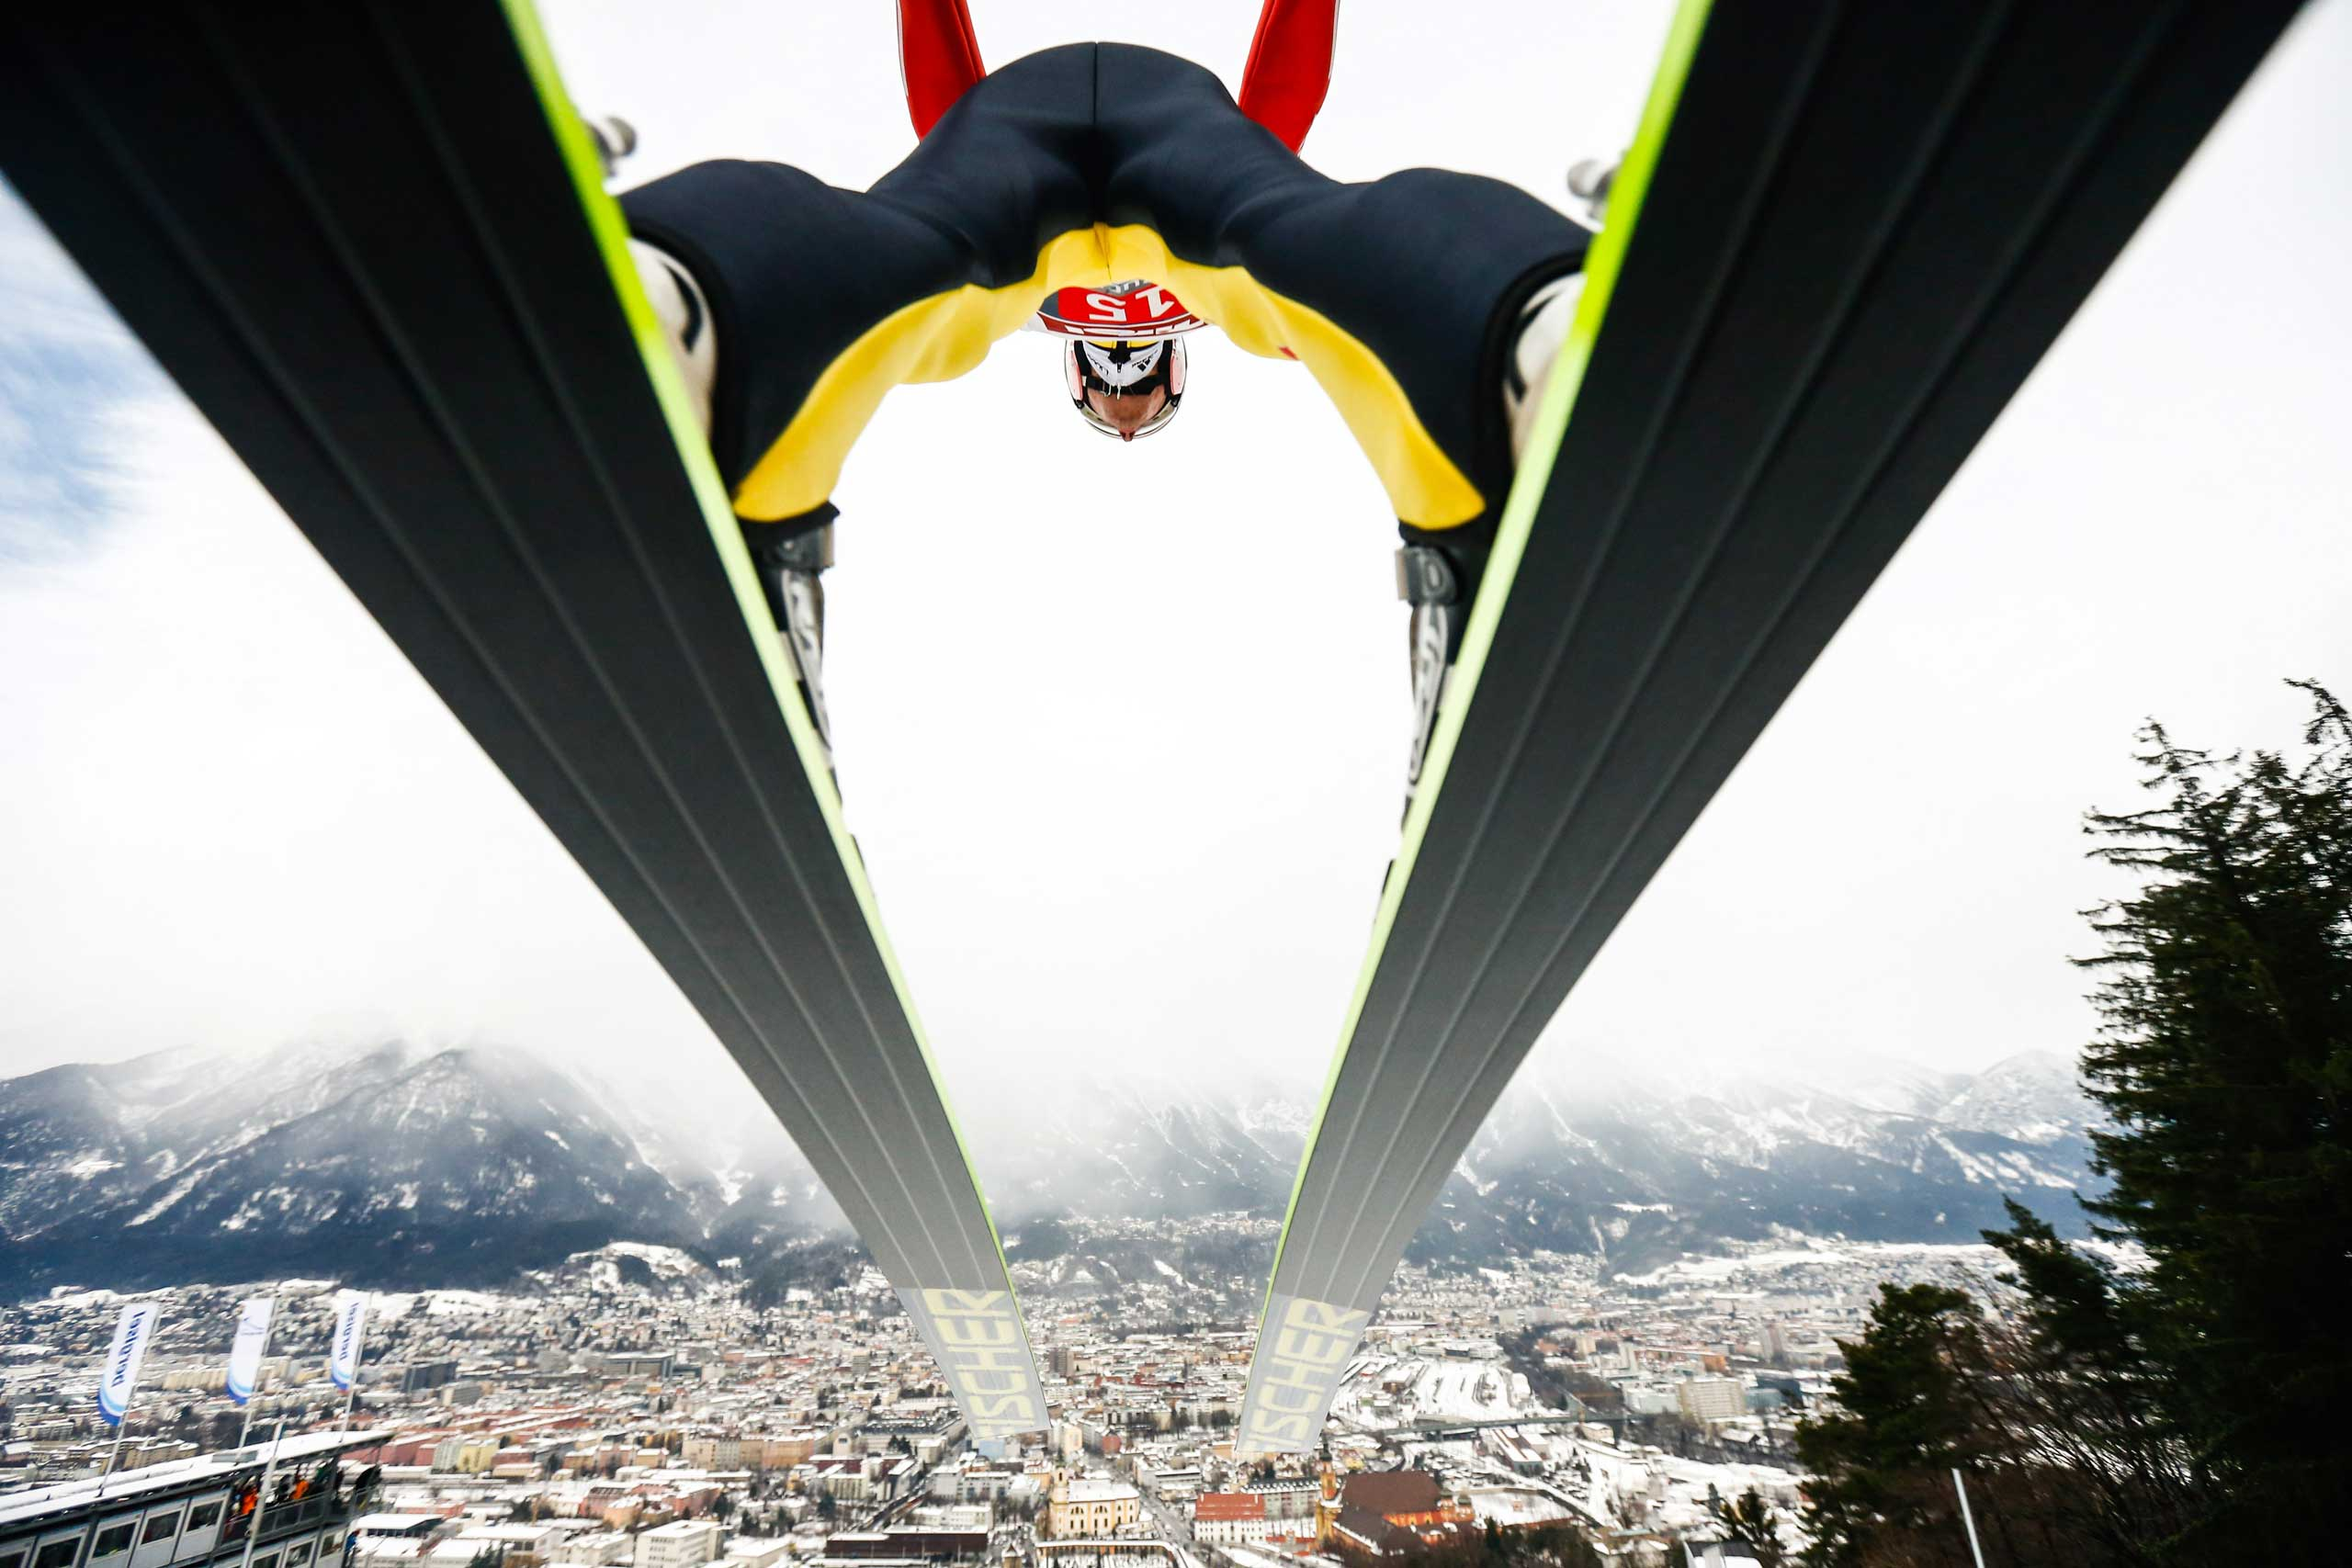 Jan. 4, 2015. Severin Freund of Germany during the FIS Ski Jumping World Cup in Innsbruck, Austria.